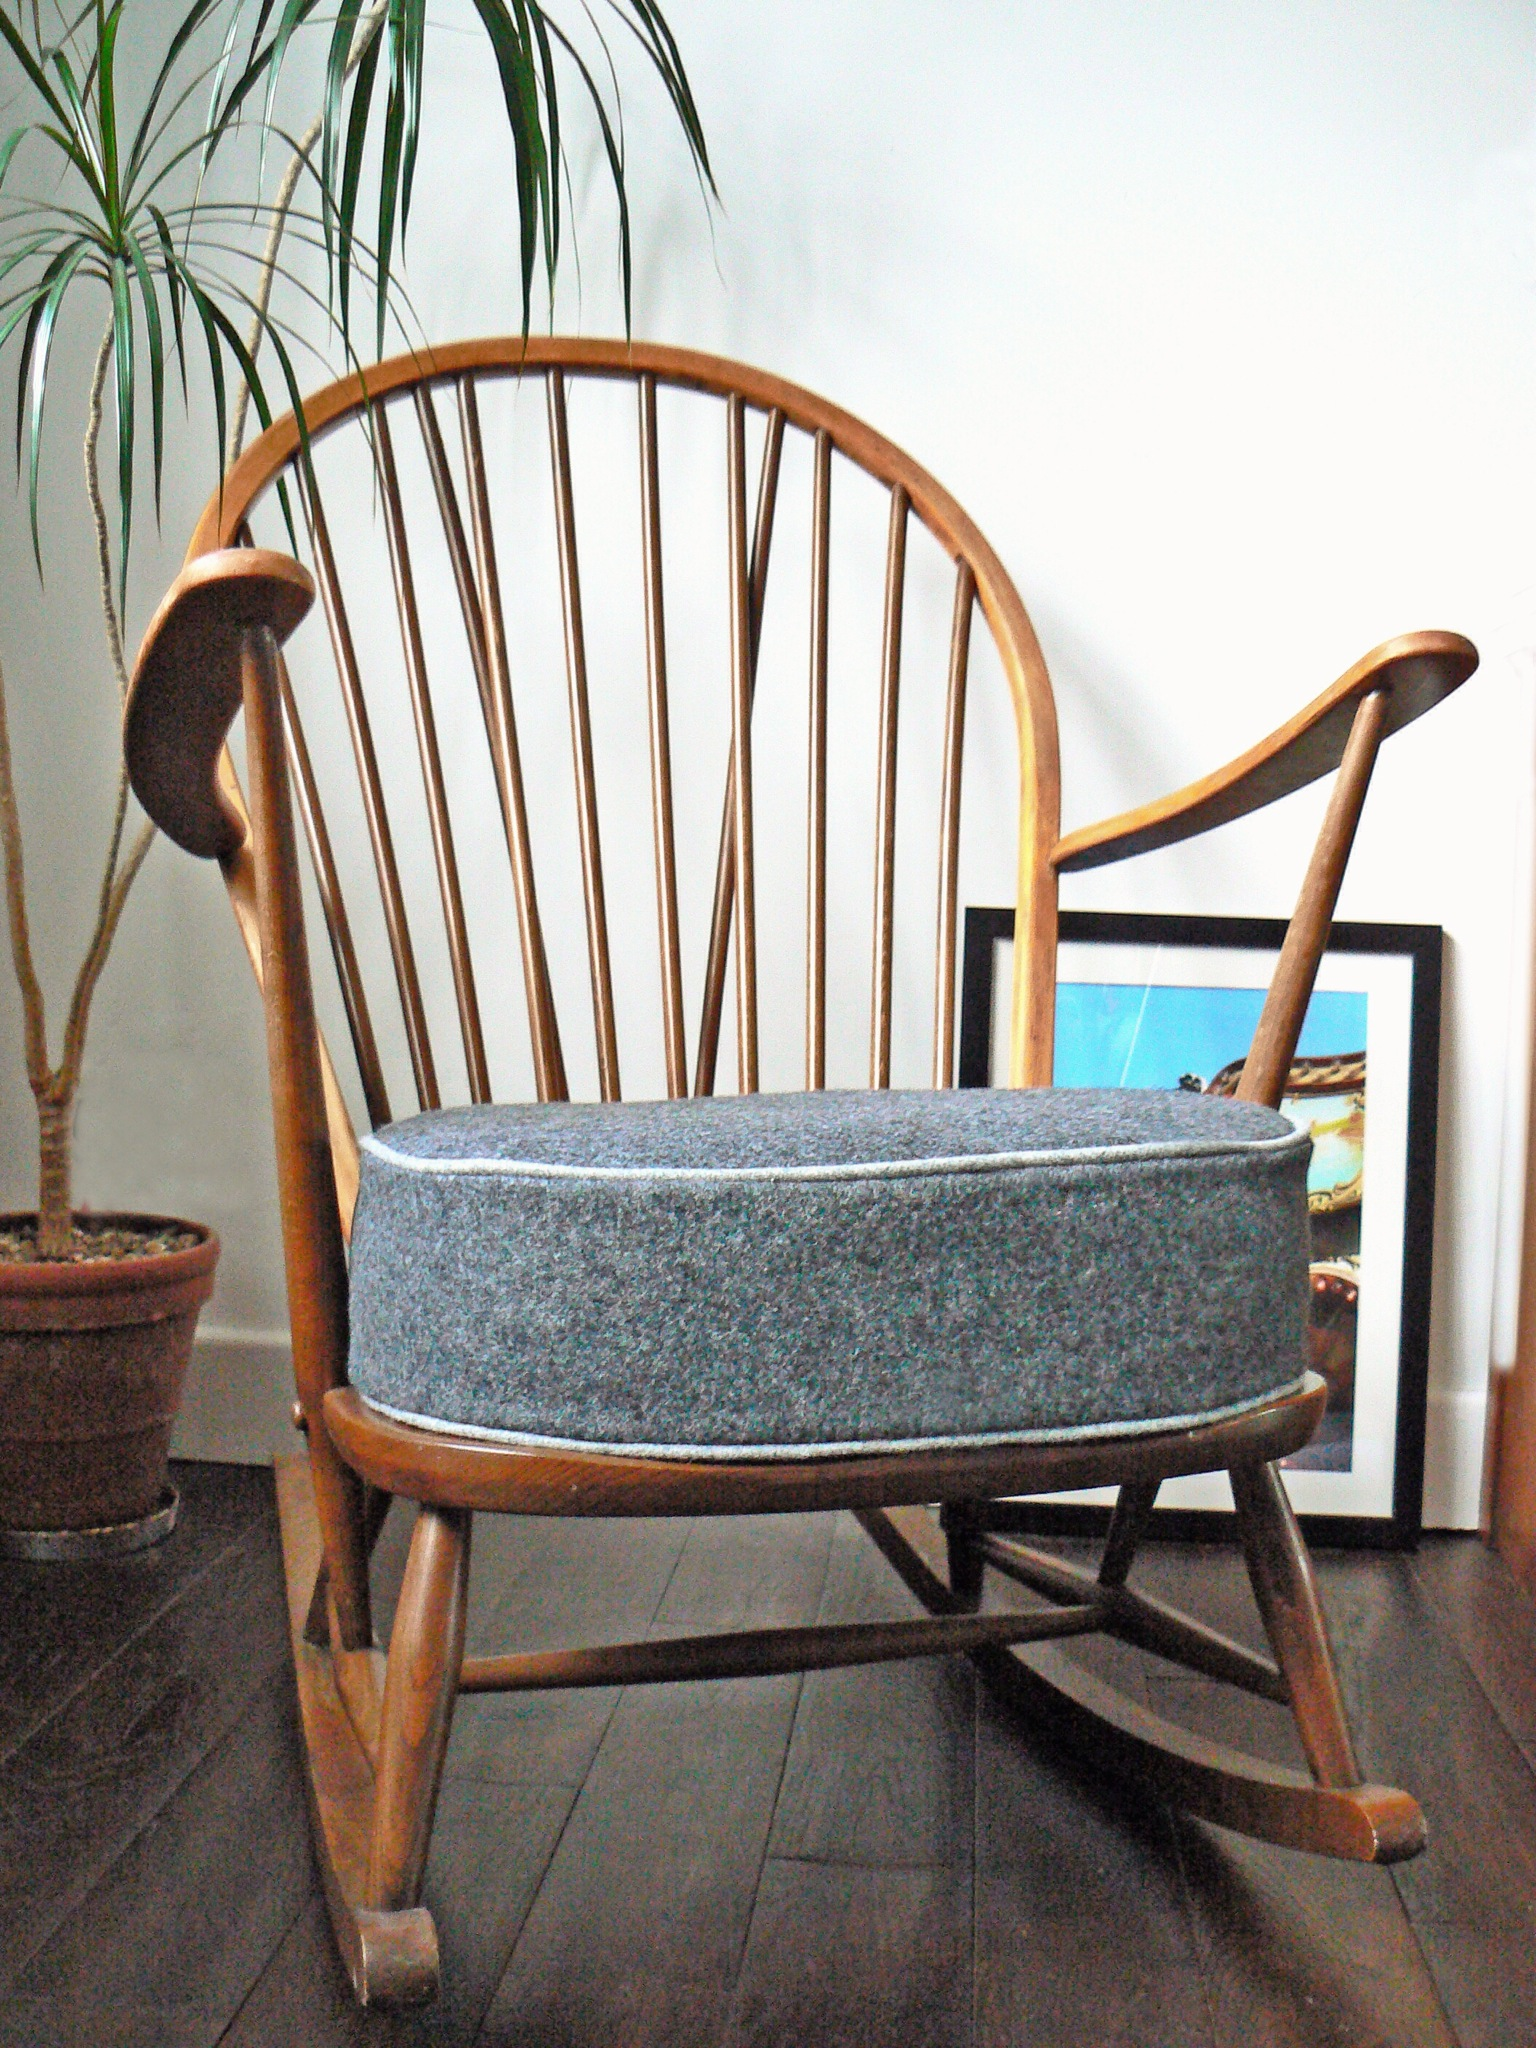 1960s Ercol Rocking Chair Philshakespeare Upholstery